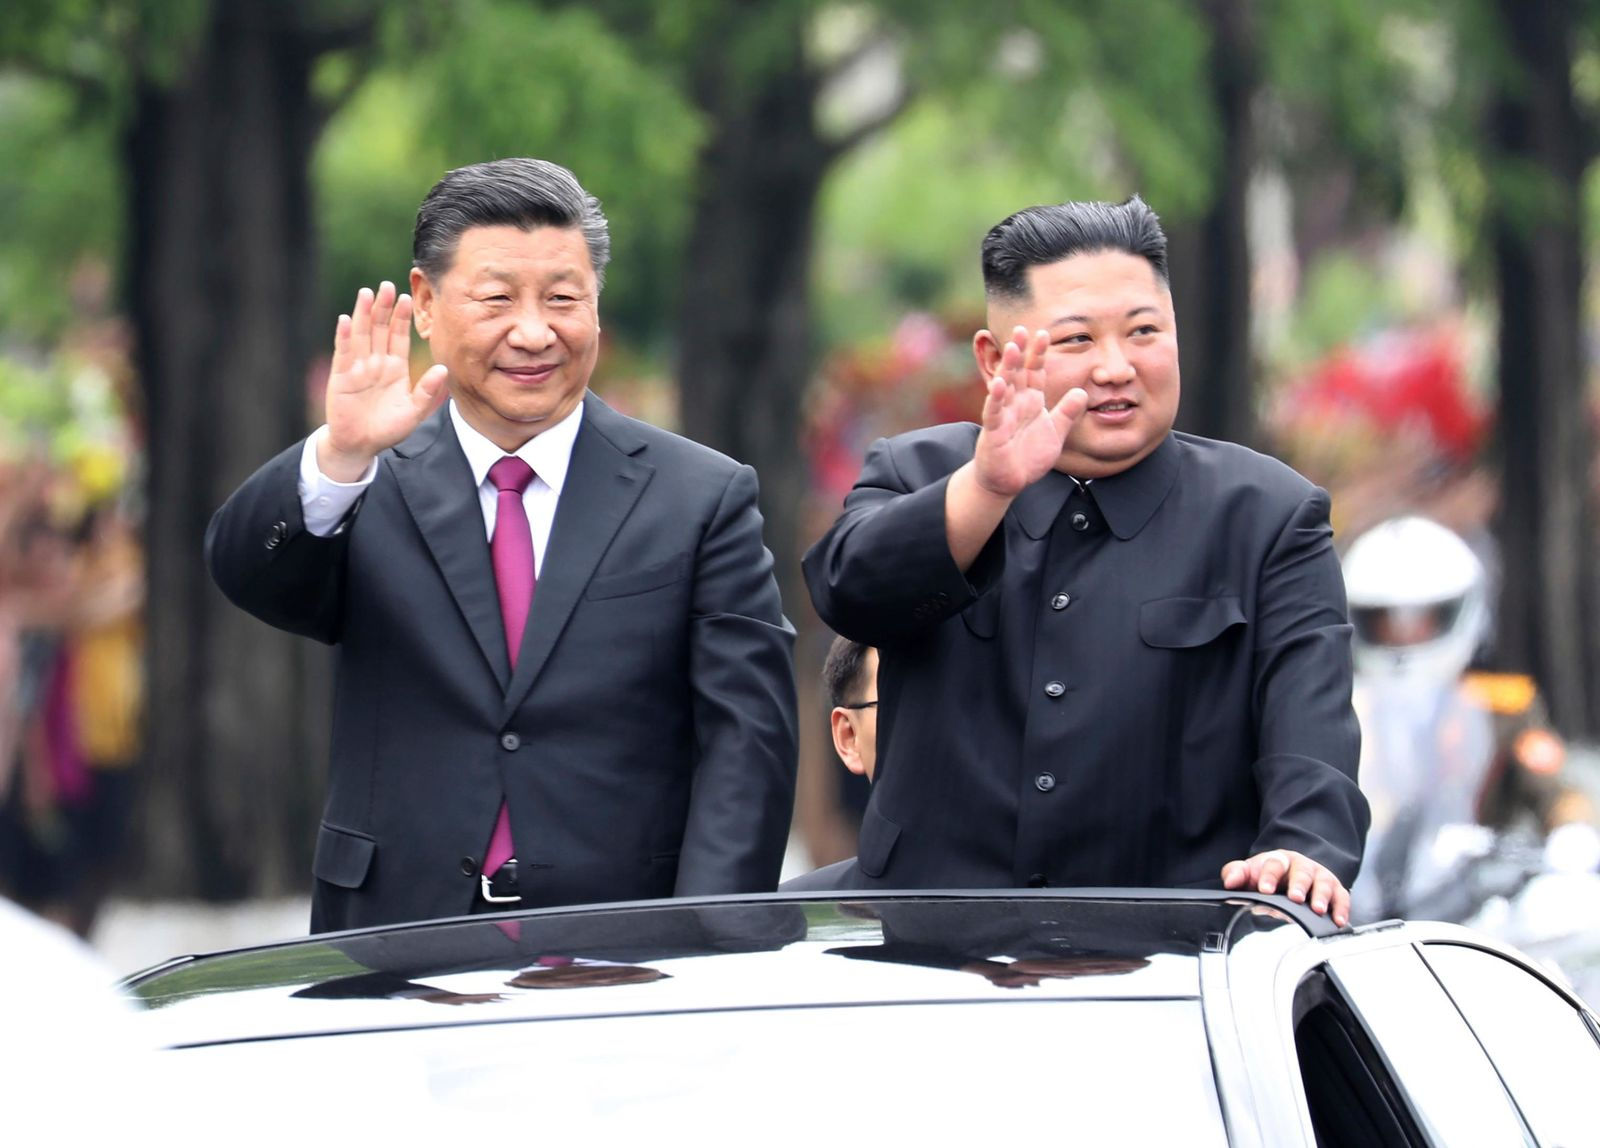 In this Thursday, June 20, 2019, photo released by China's Xinhua News Agency, visiting Chinese President Xi Jinping, left, and North Korean leader Kim Jong Un wave from an open top limousine as they travel along a street in Pyongyang, North Korea. North Korean leader Kim Jong Un, meeting in Pyongyang with Chinese President Xi Jinping, said Thursday that his country is waiting for a desired response in stalled nuclear talks with the United States. (Ju Peng/Xinhua via AP)